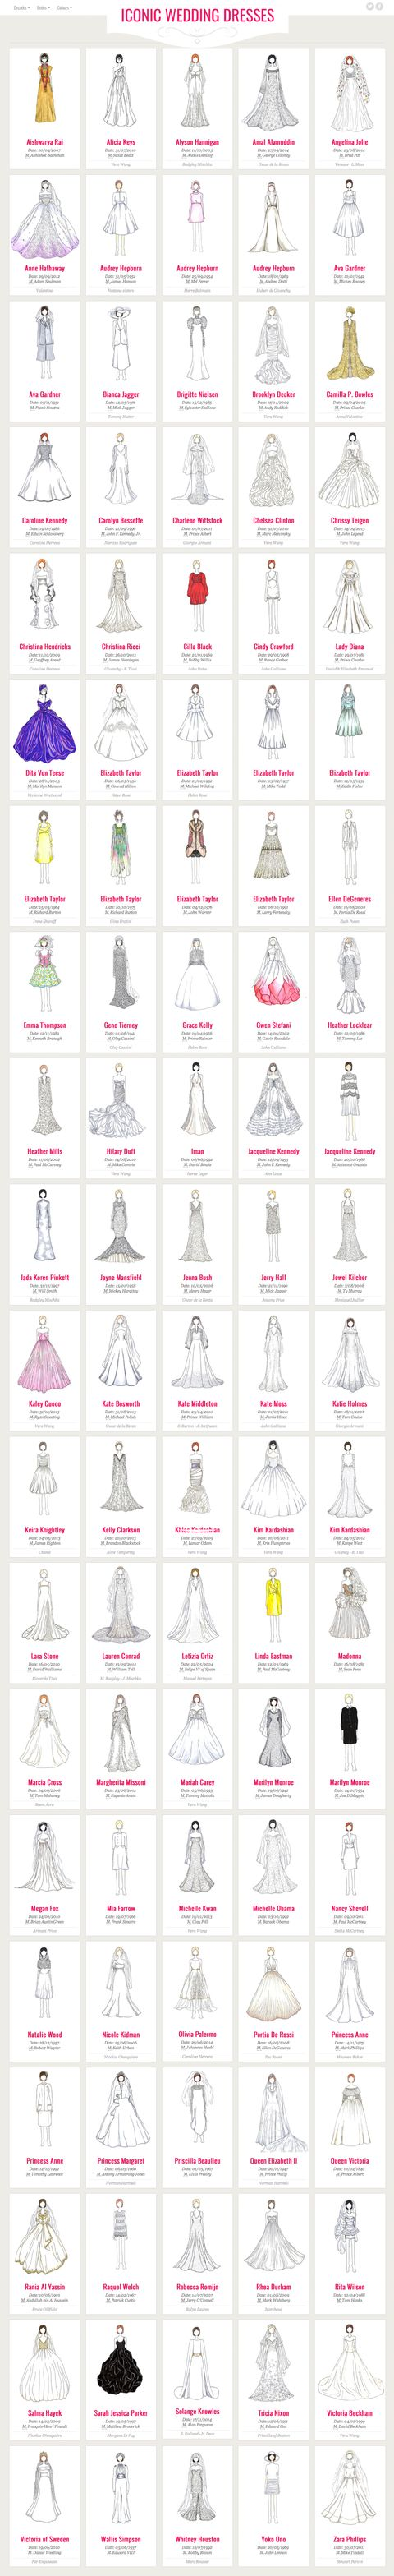 See 100 Sketches of the Most Iconic Wedding Dresses Ever as One Handy Chart | InStyle.com From Audrey Hepburn to Kate Middleton